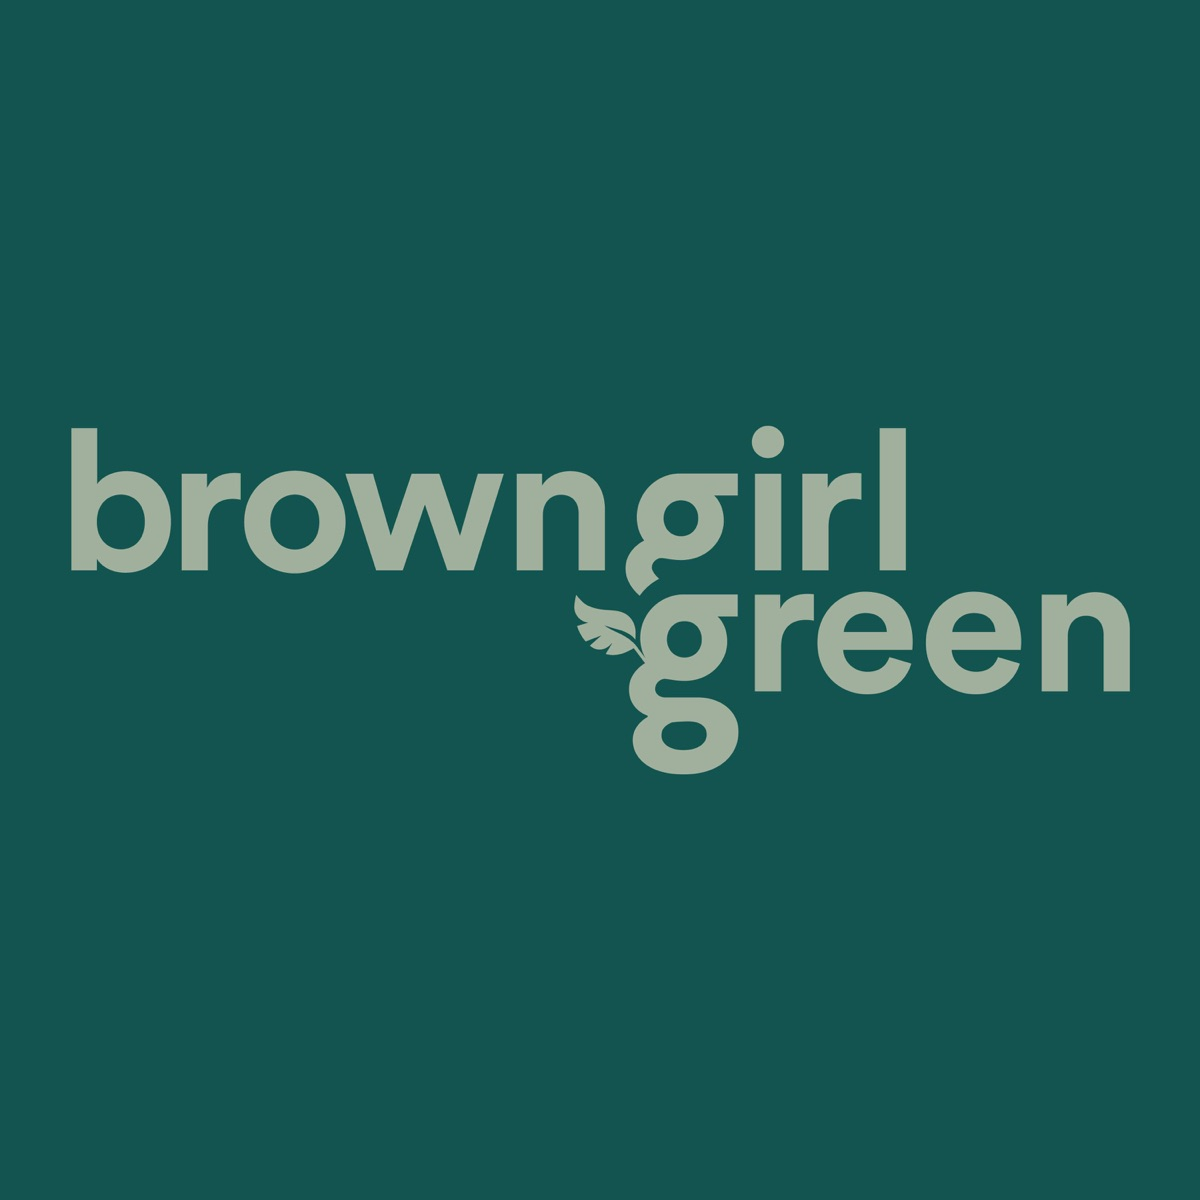 brown-girl-green